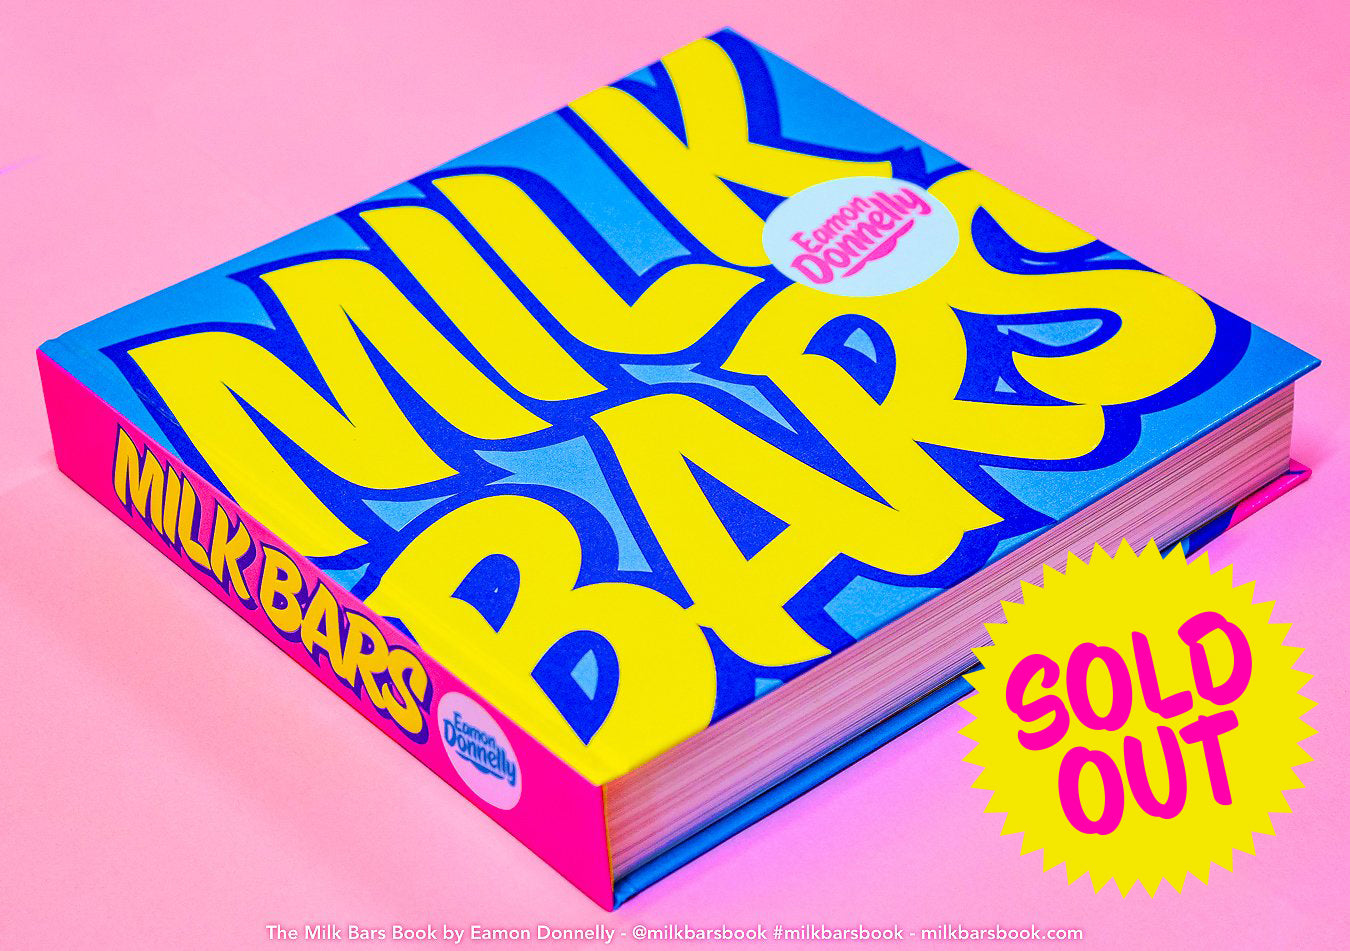 The MILK BARS Book by Eamon Donnelly first edition (2018)